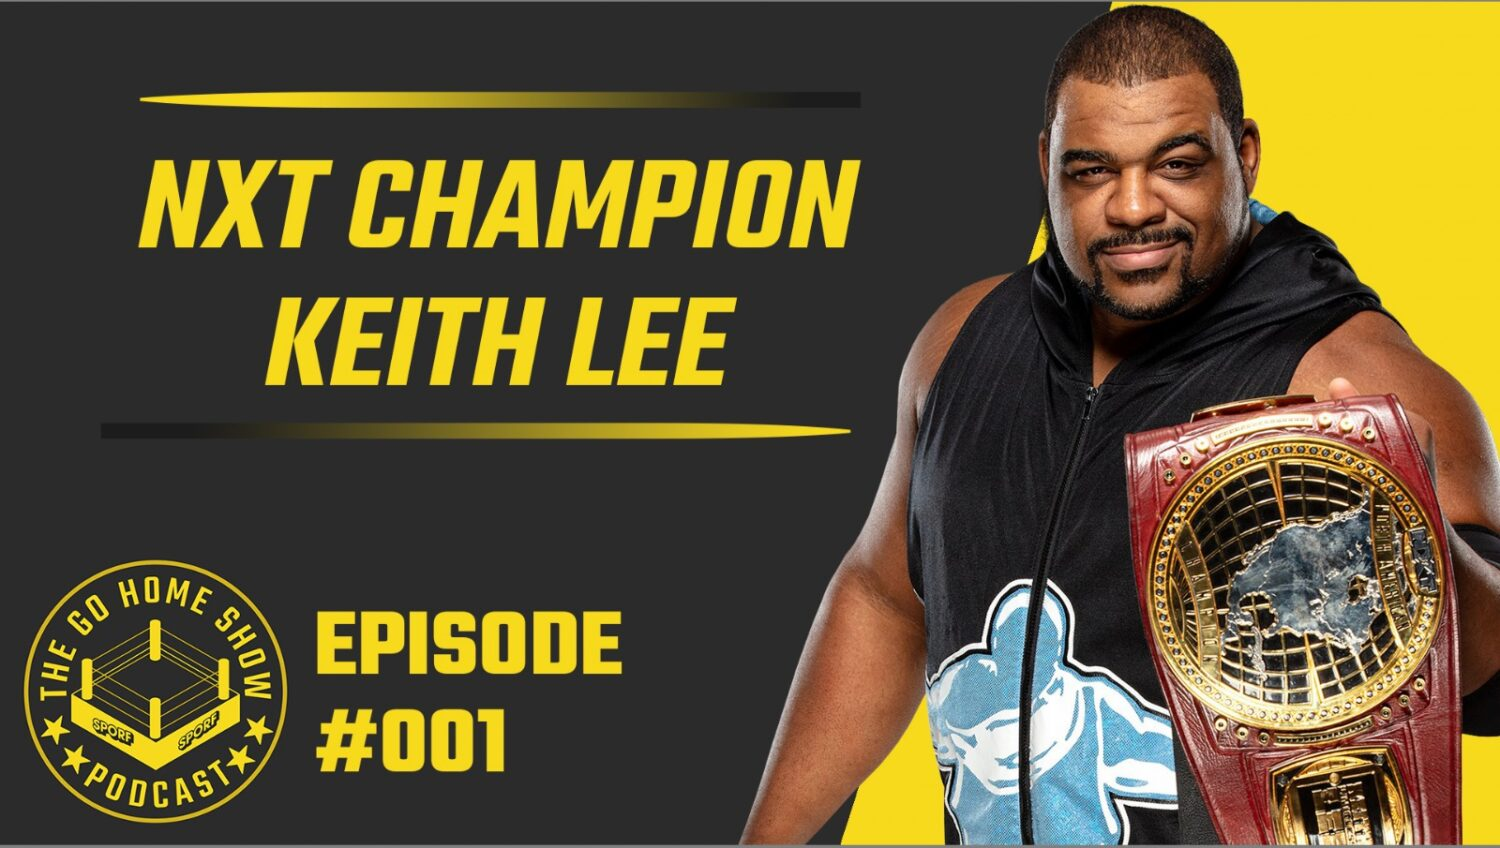 Keith Lee Go Home podcast